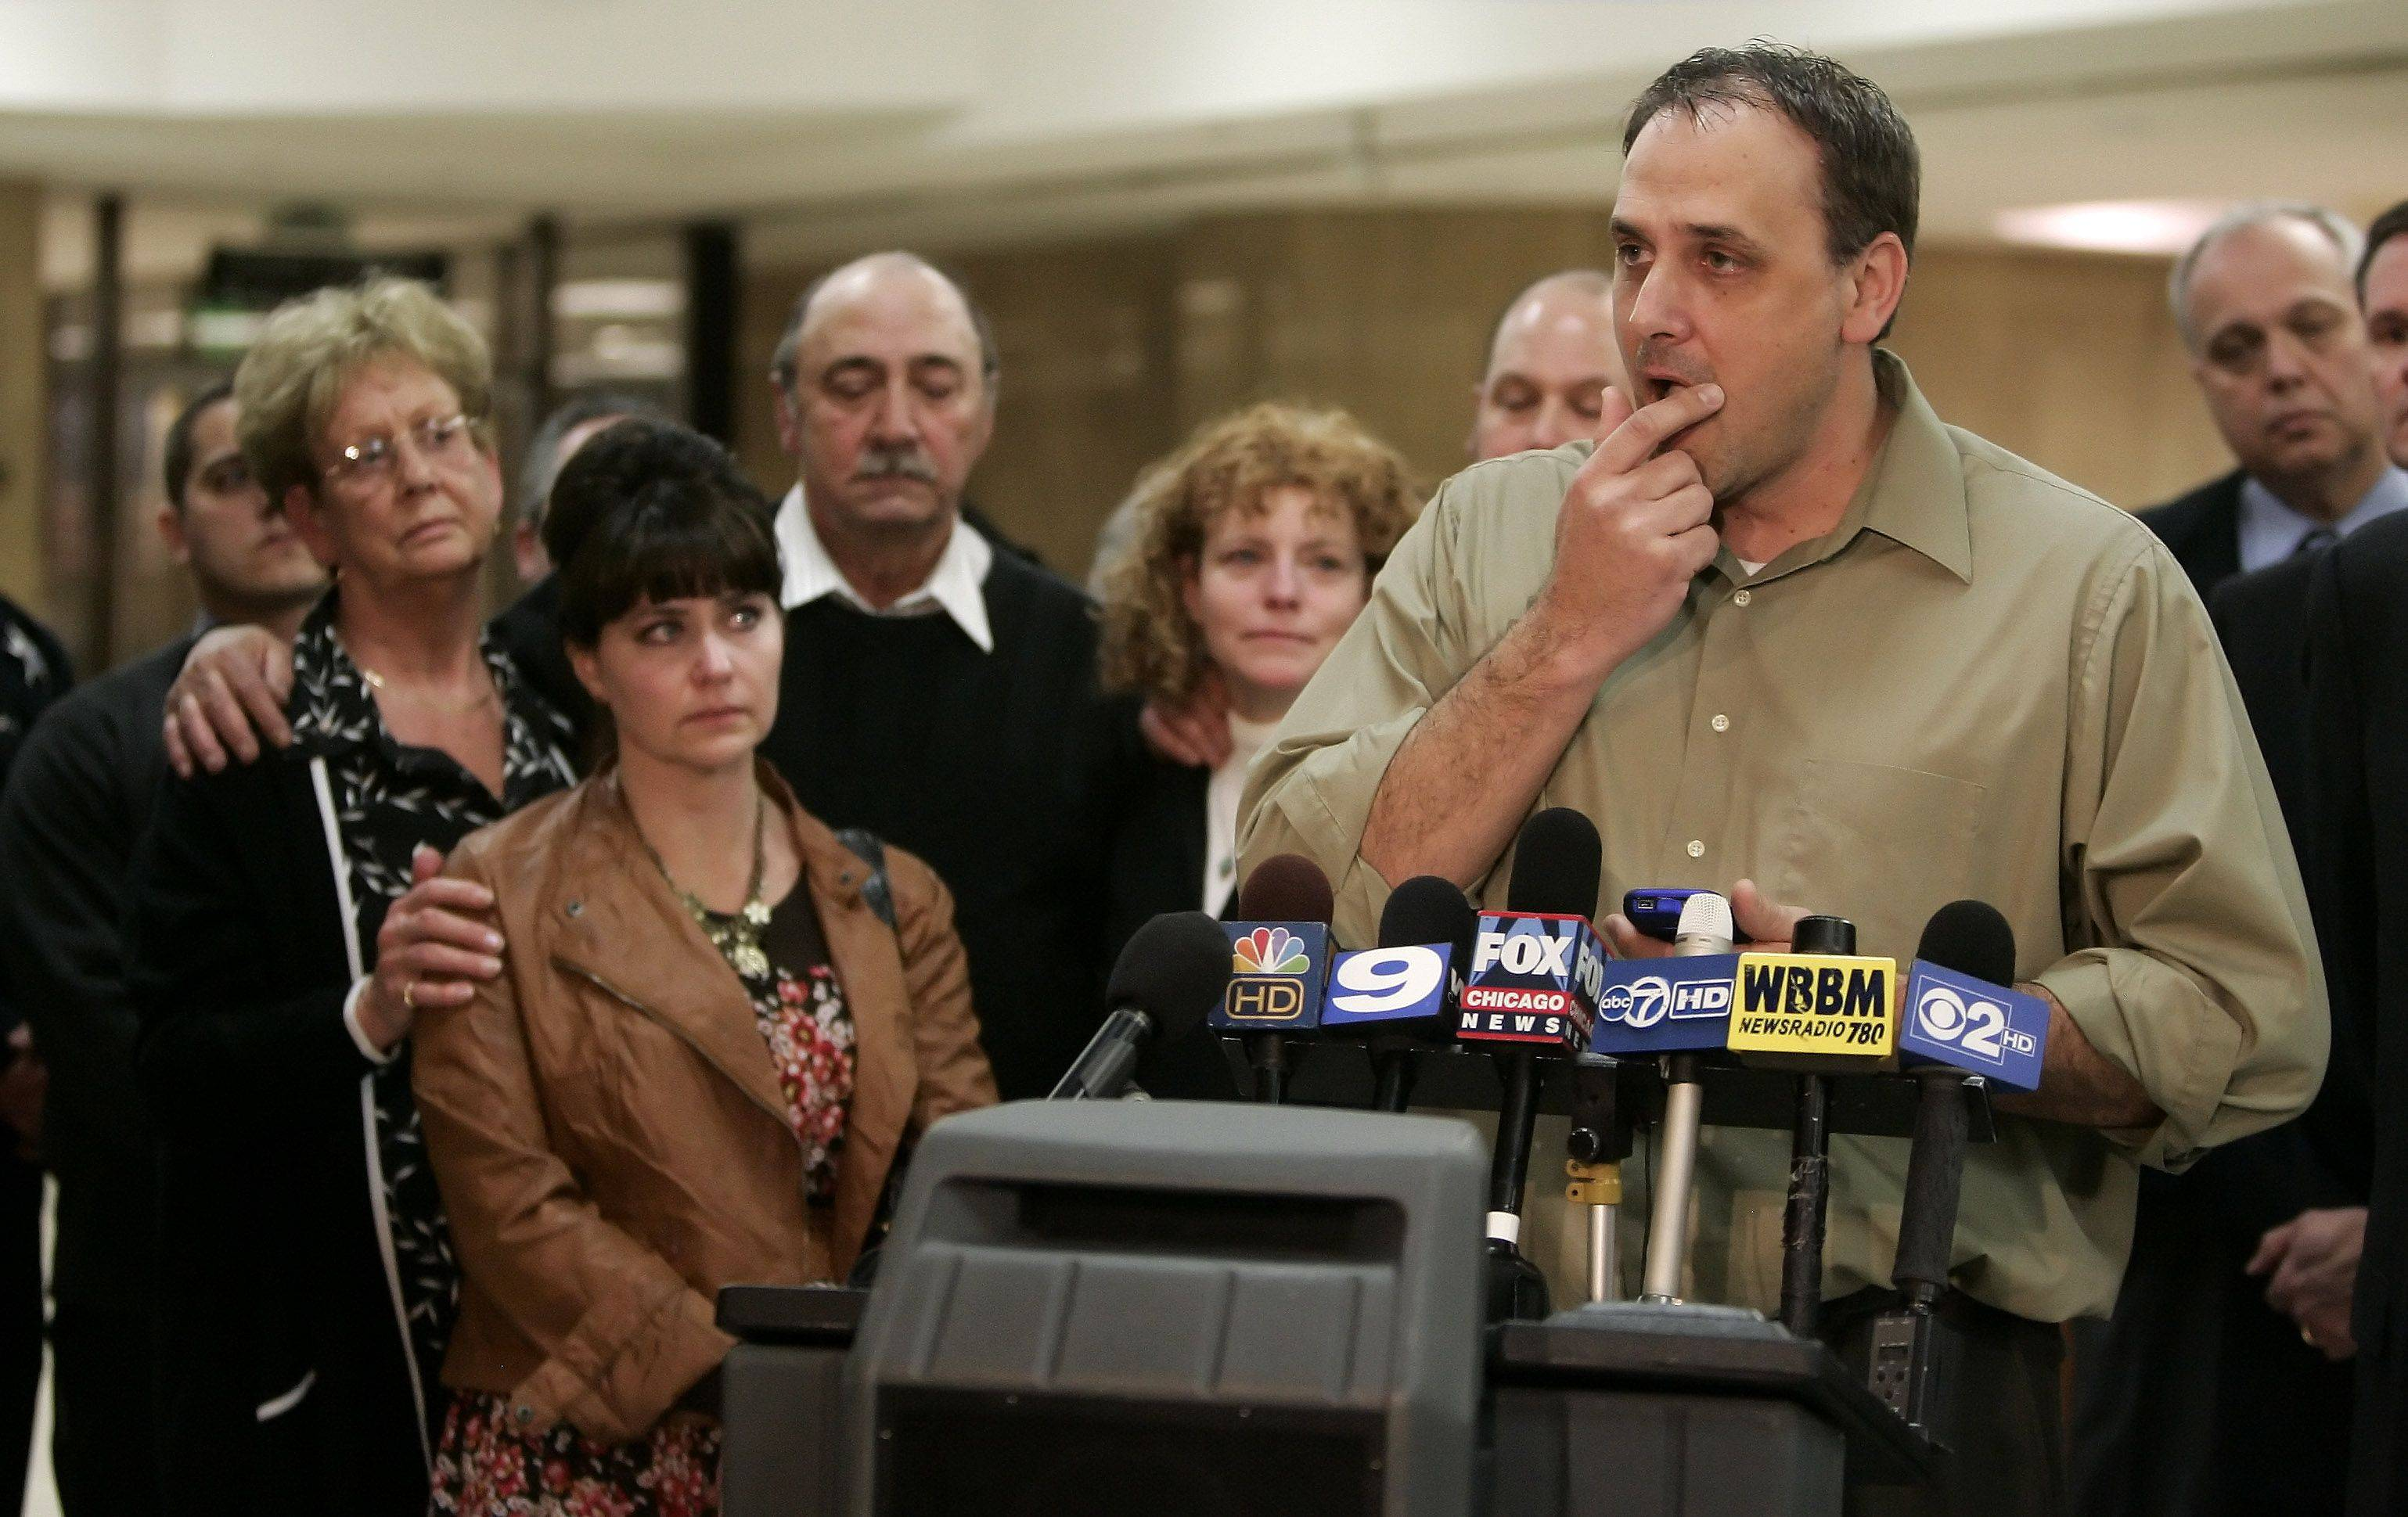 Gilbert R. Boucher II/gboucher@dailyherald.comThad Reuter, brother of Rhoni Reuter, right, is near tears as he addresses the media after the guilty verdict in the Marni Yang trial in the murder of Rhoni Reuter Tuesday at the Lake County courthouse in Waukegan. The rest of the Reuter family listens in the background.